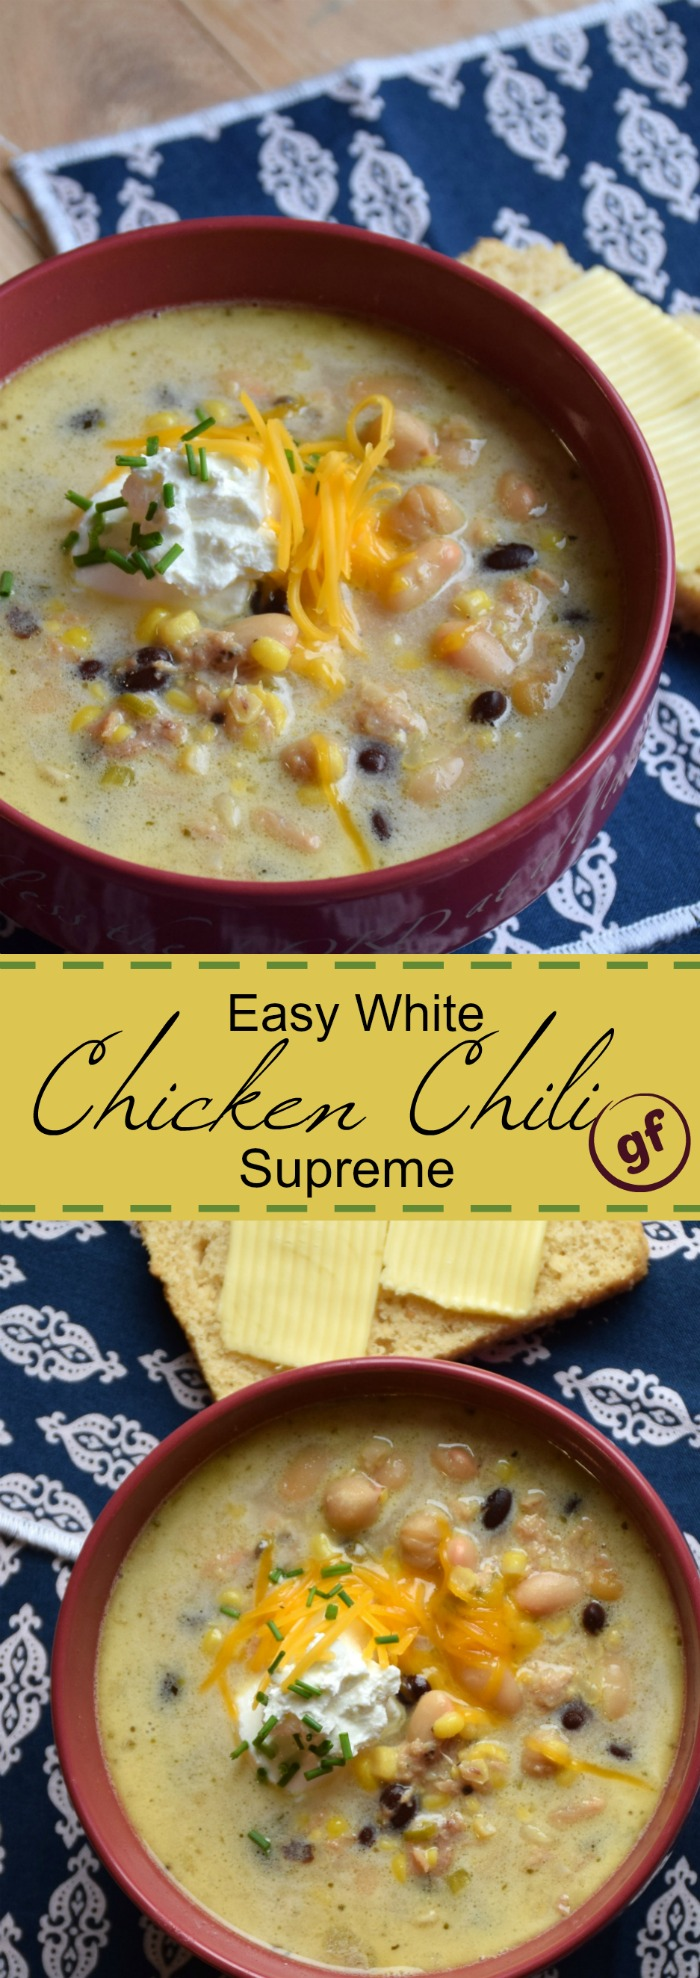 Recipe for easy white chicken chili supreme with black beans, corn, veggies - naturally gluten free